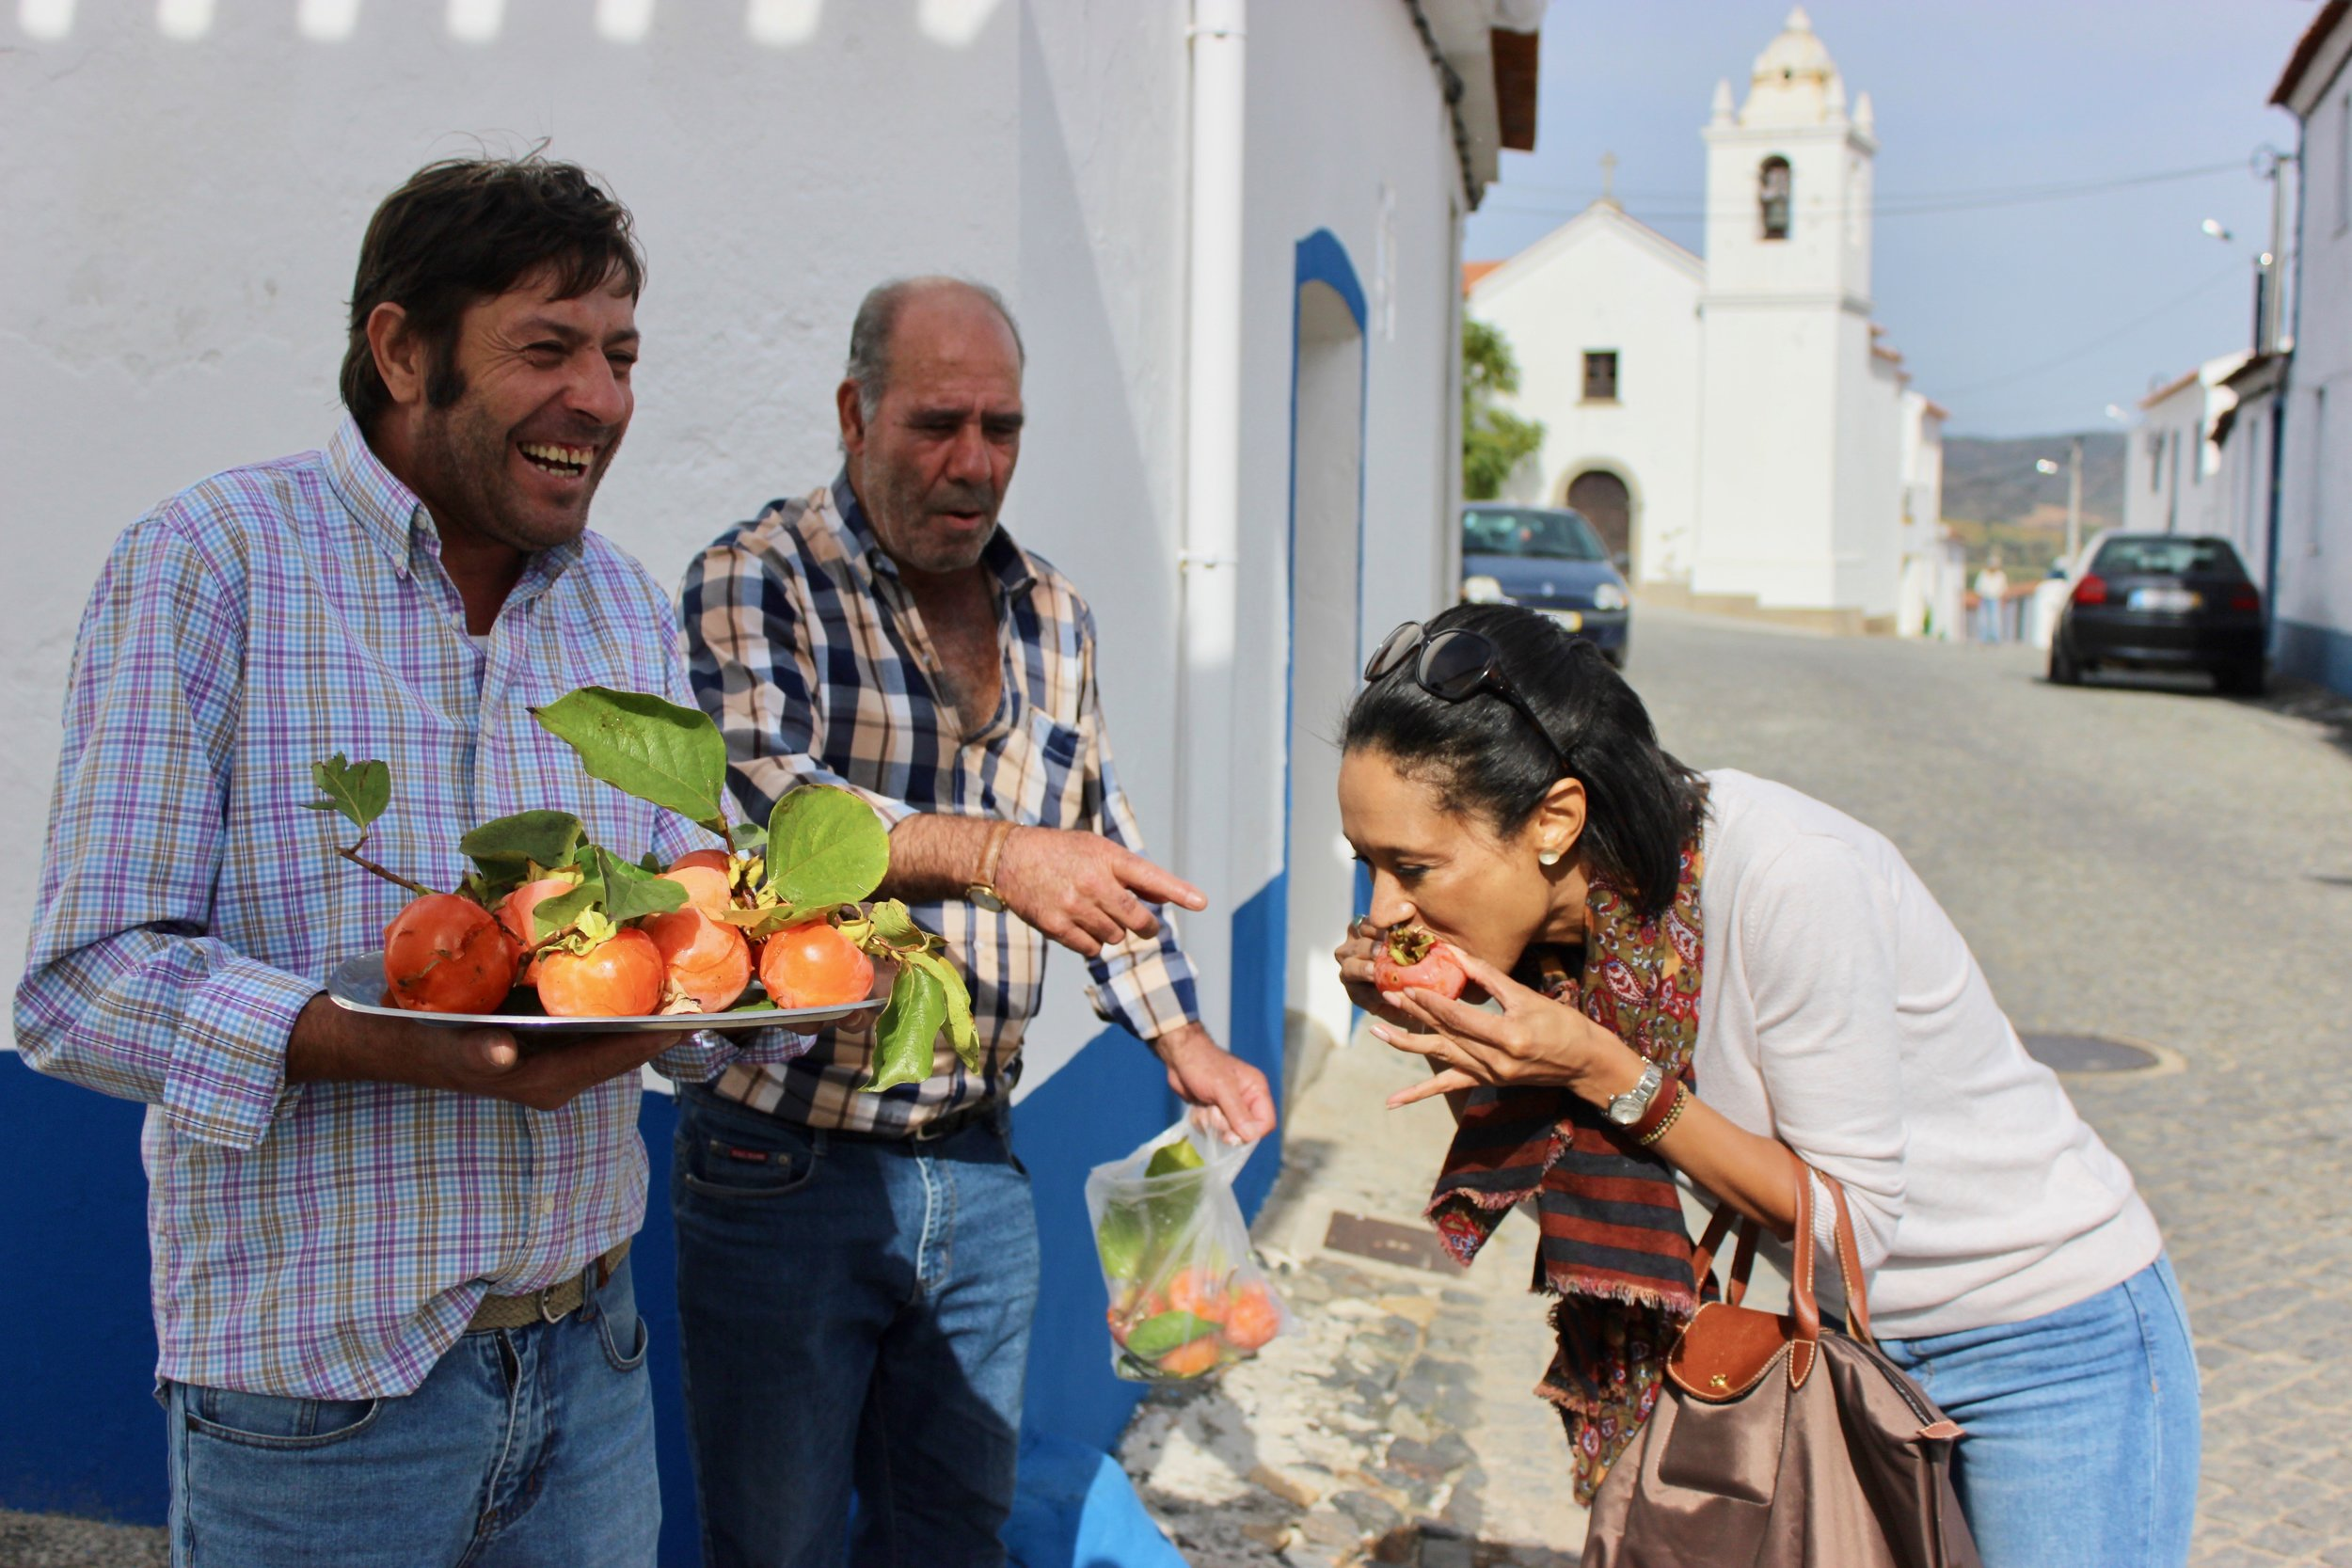 Eating Persimmons in the Alentejo